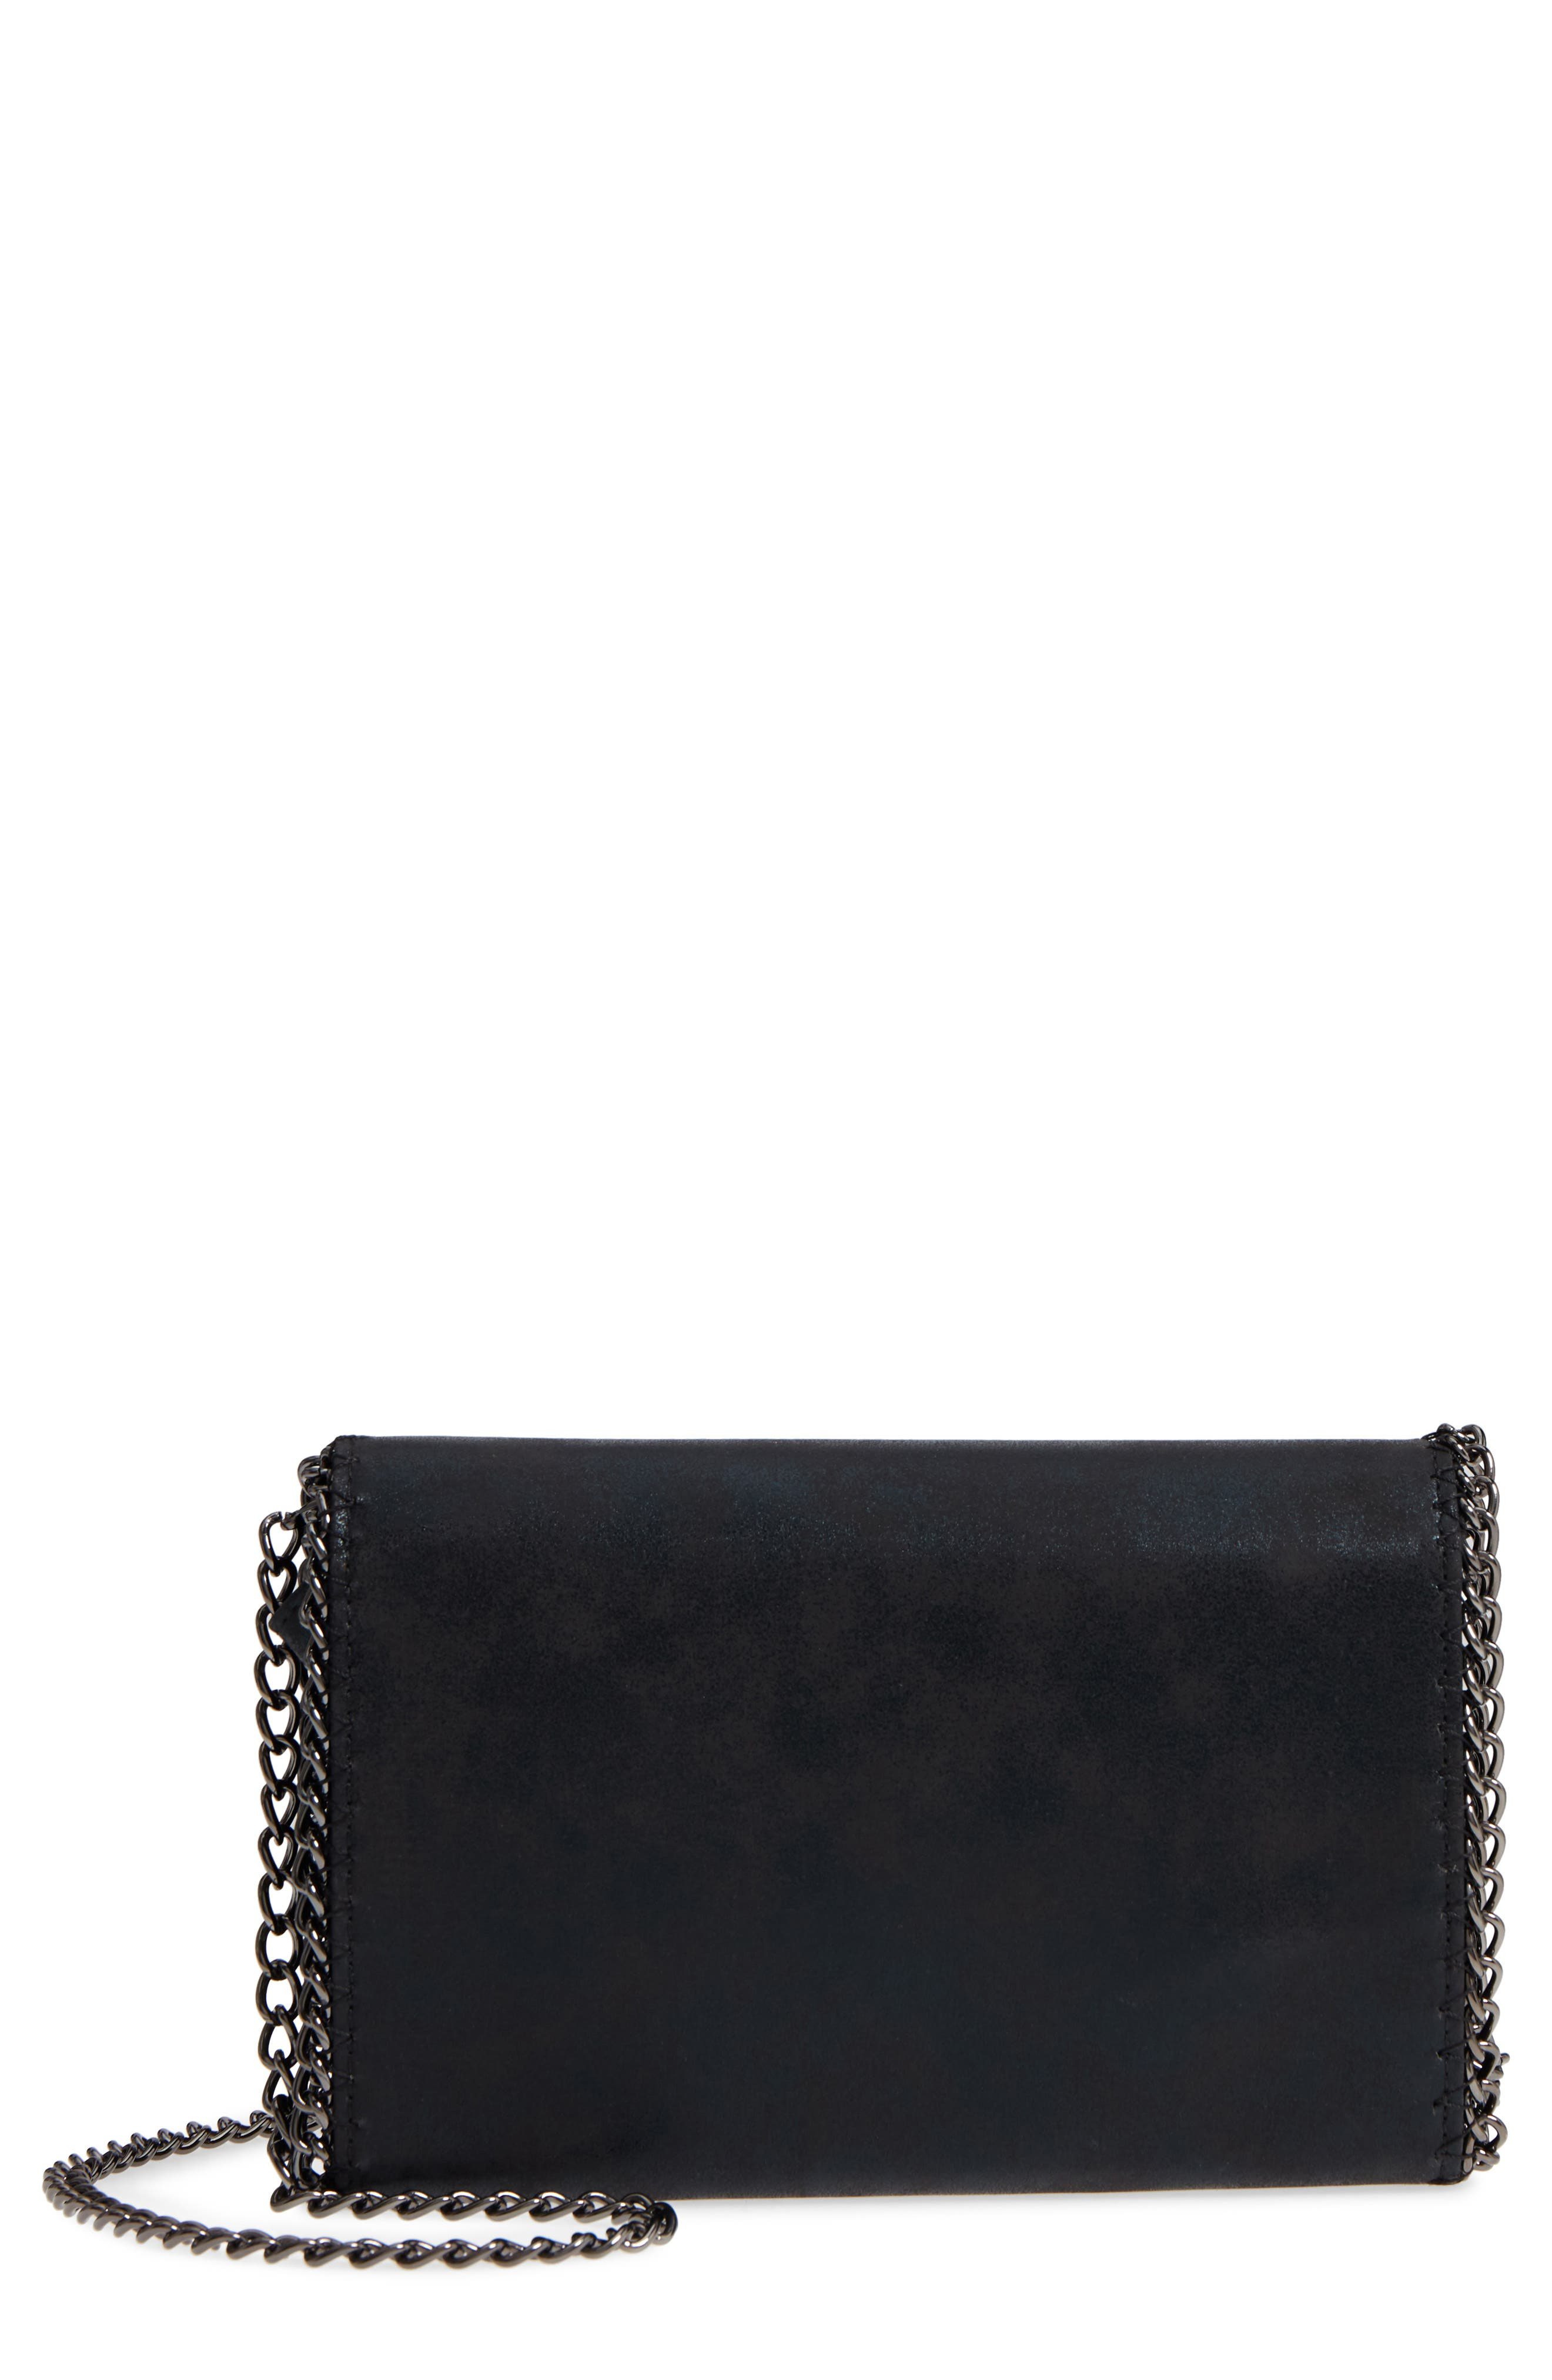 CHELSEA28, Faux Leather Wallet on a Chain, Main thumbnail 1, color, BLACK